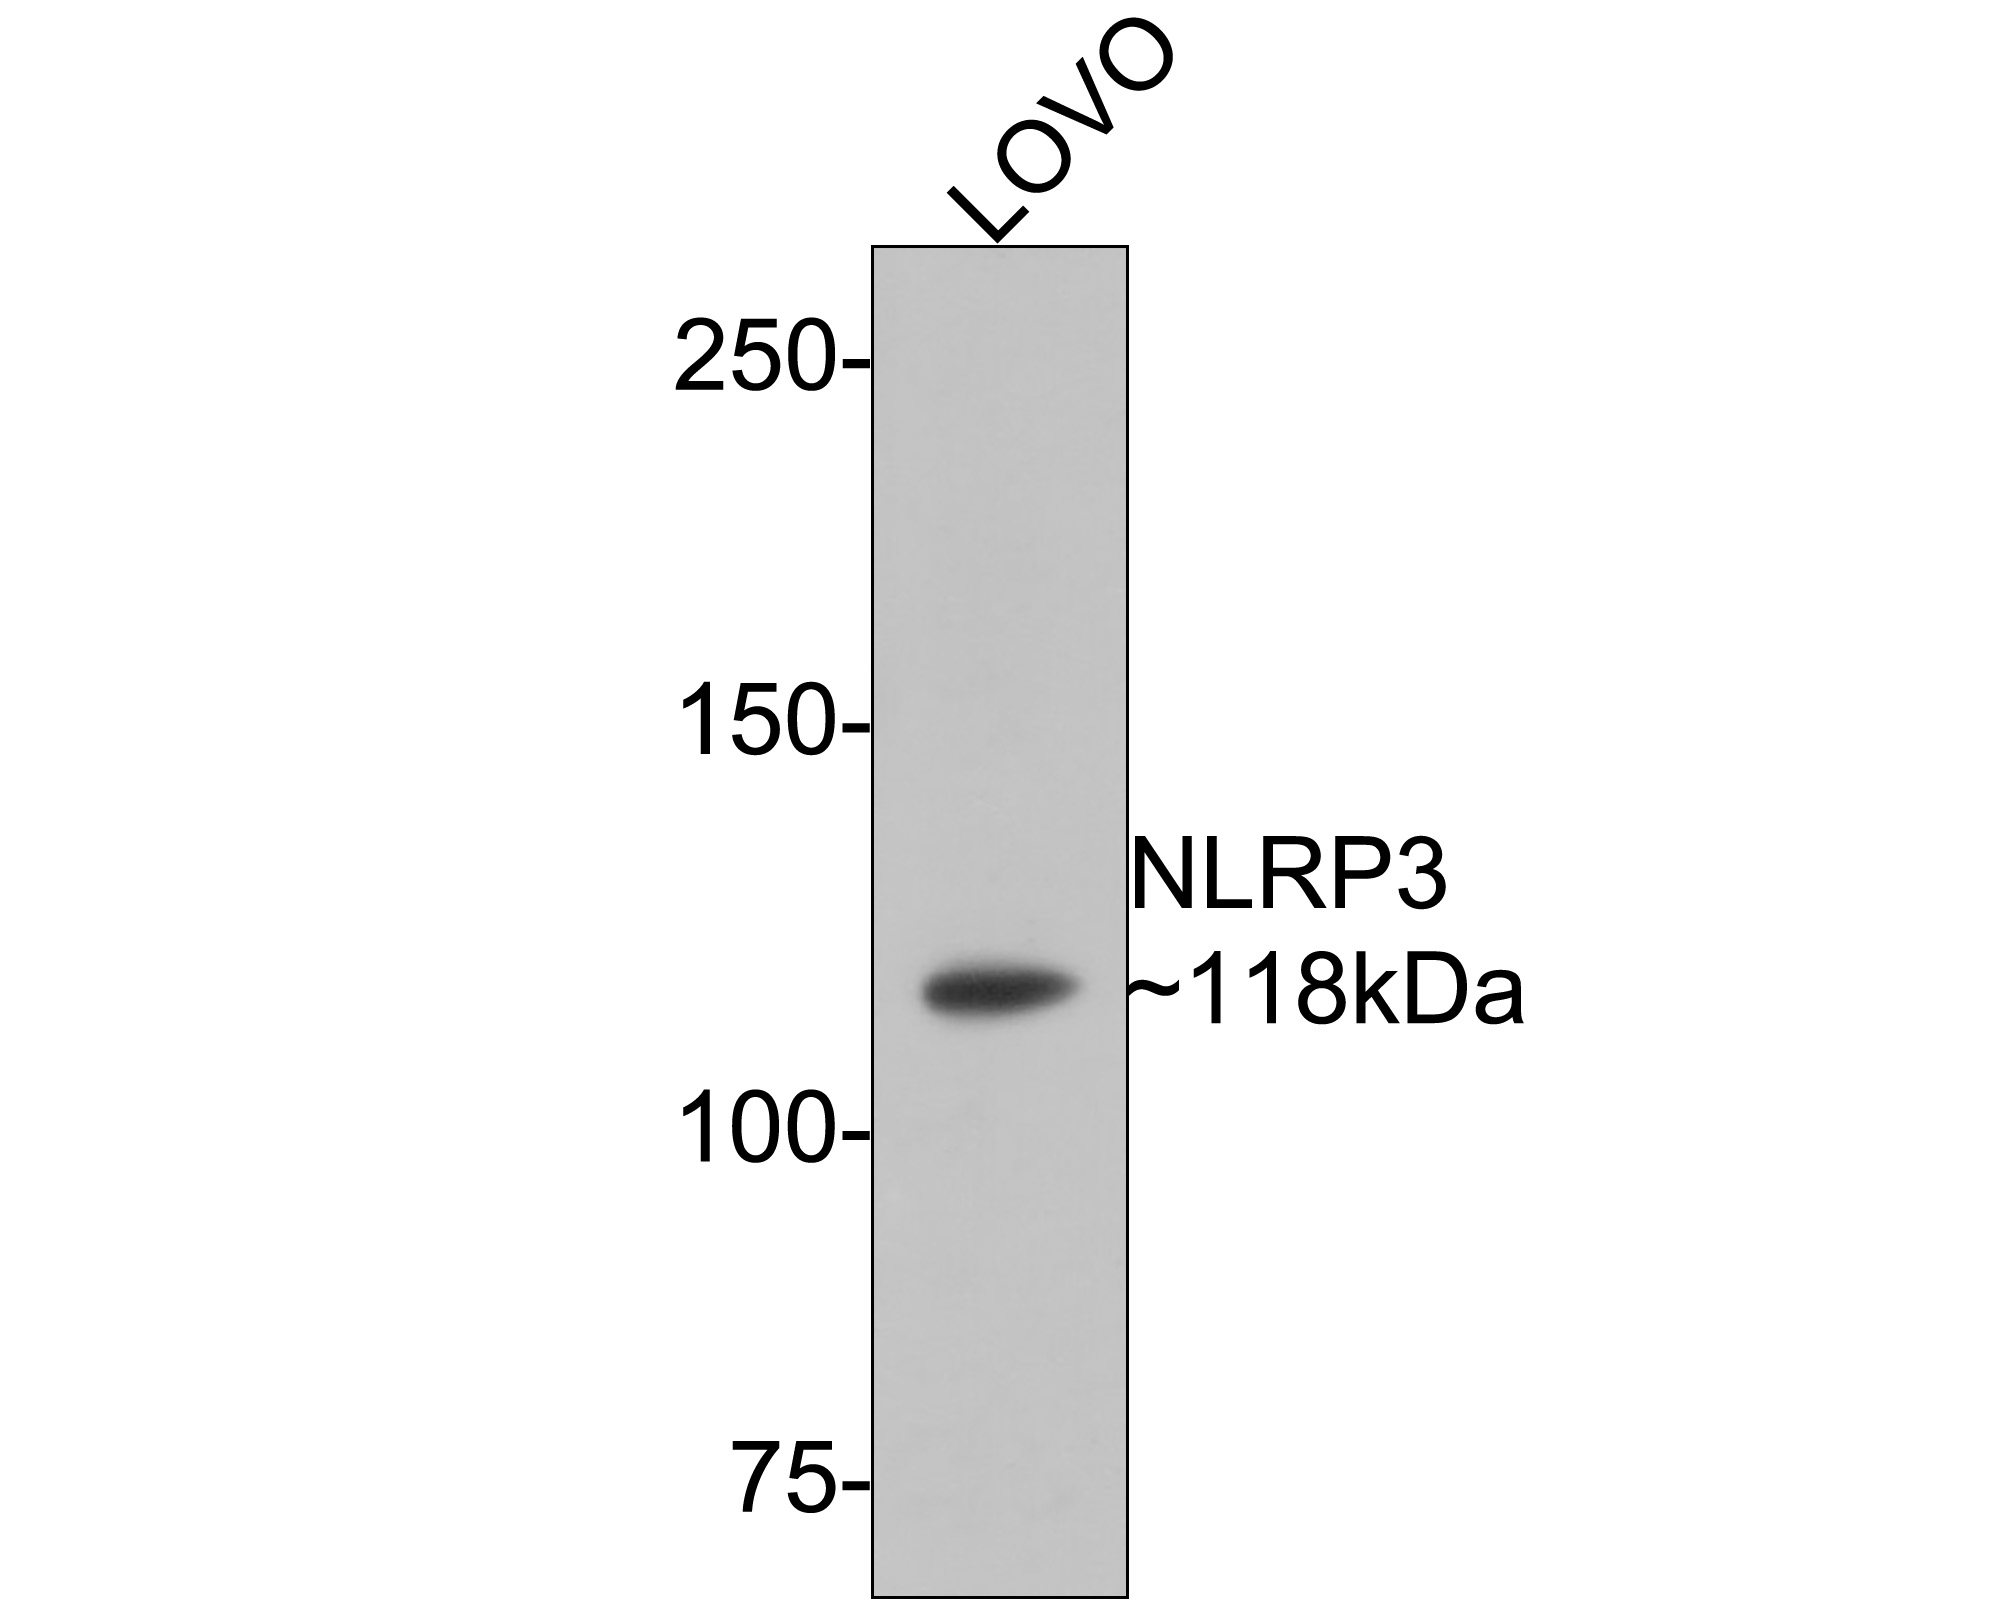 Western blot analysis of NLRP3 on different lysates using anti-NLRP3 antibody at 1/1,000 dilution.<br />  Positive control:<br />  Lane 1: Human lung <br />  Lane 2: Mouse thymus<br />  Lane 3: THP-1 <br />